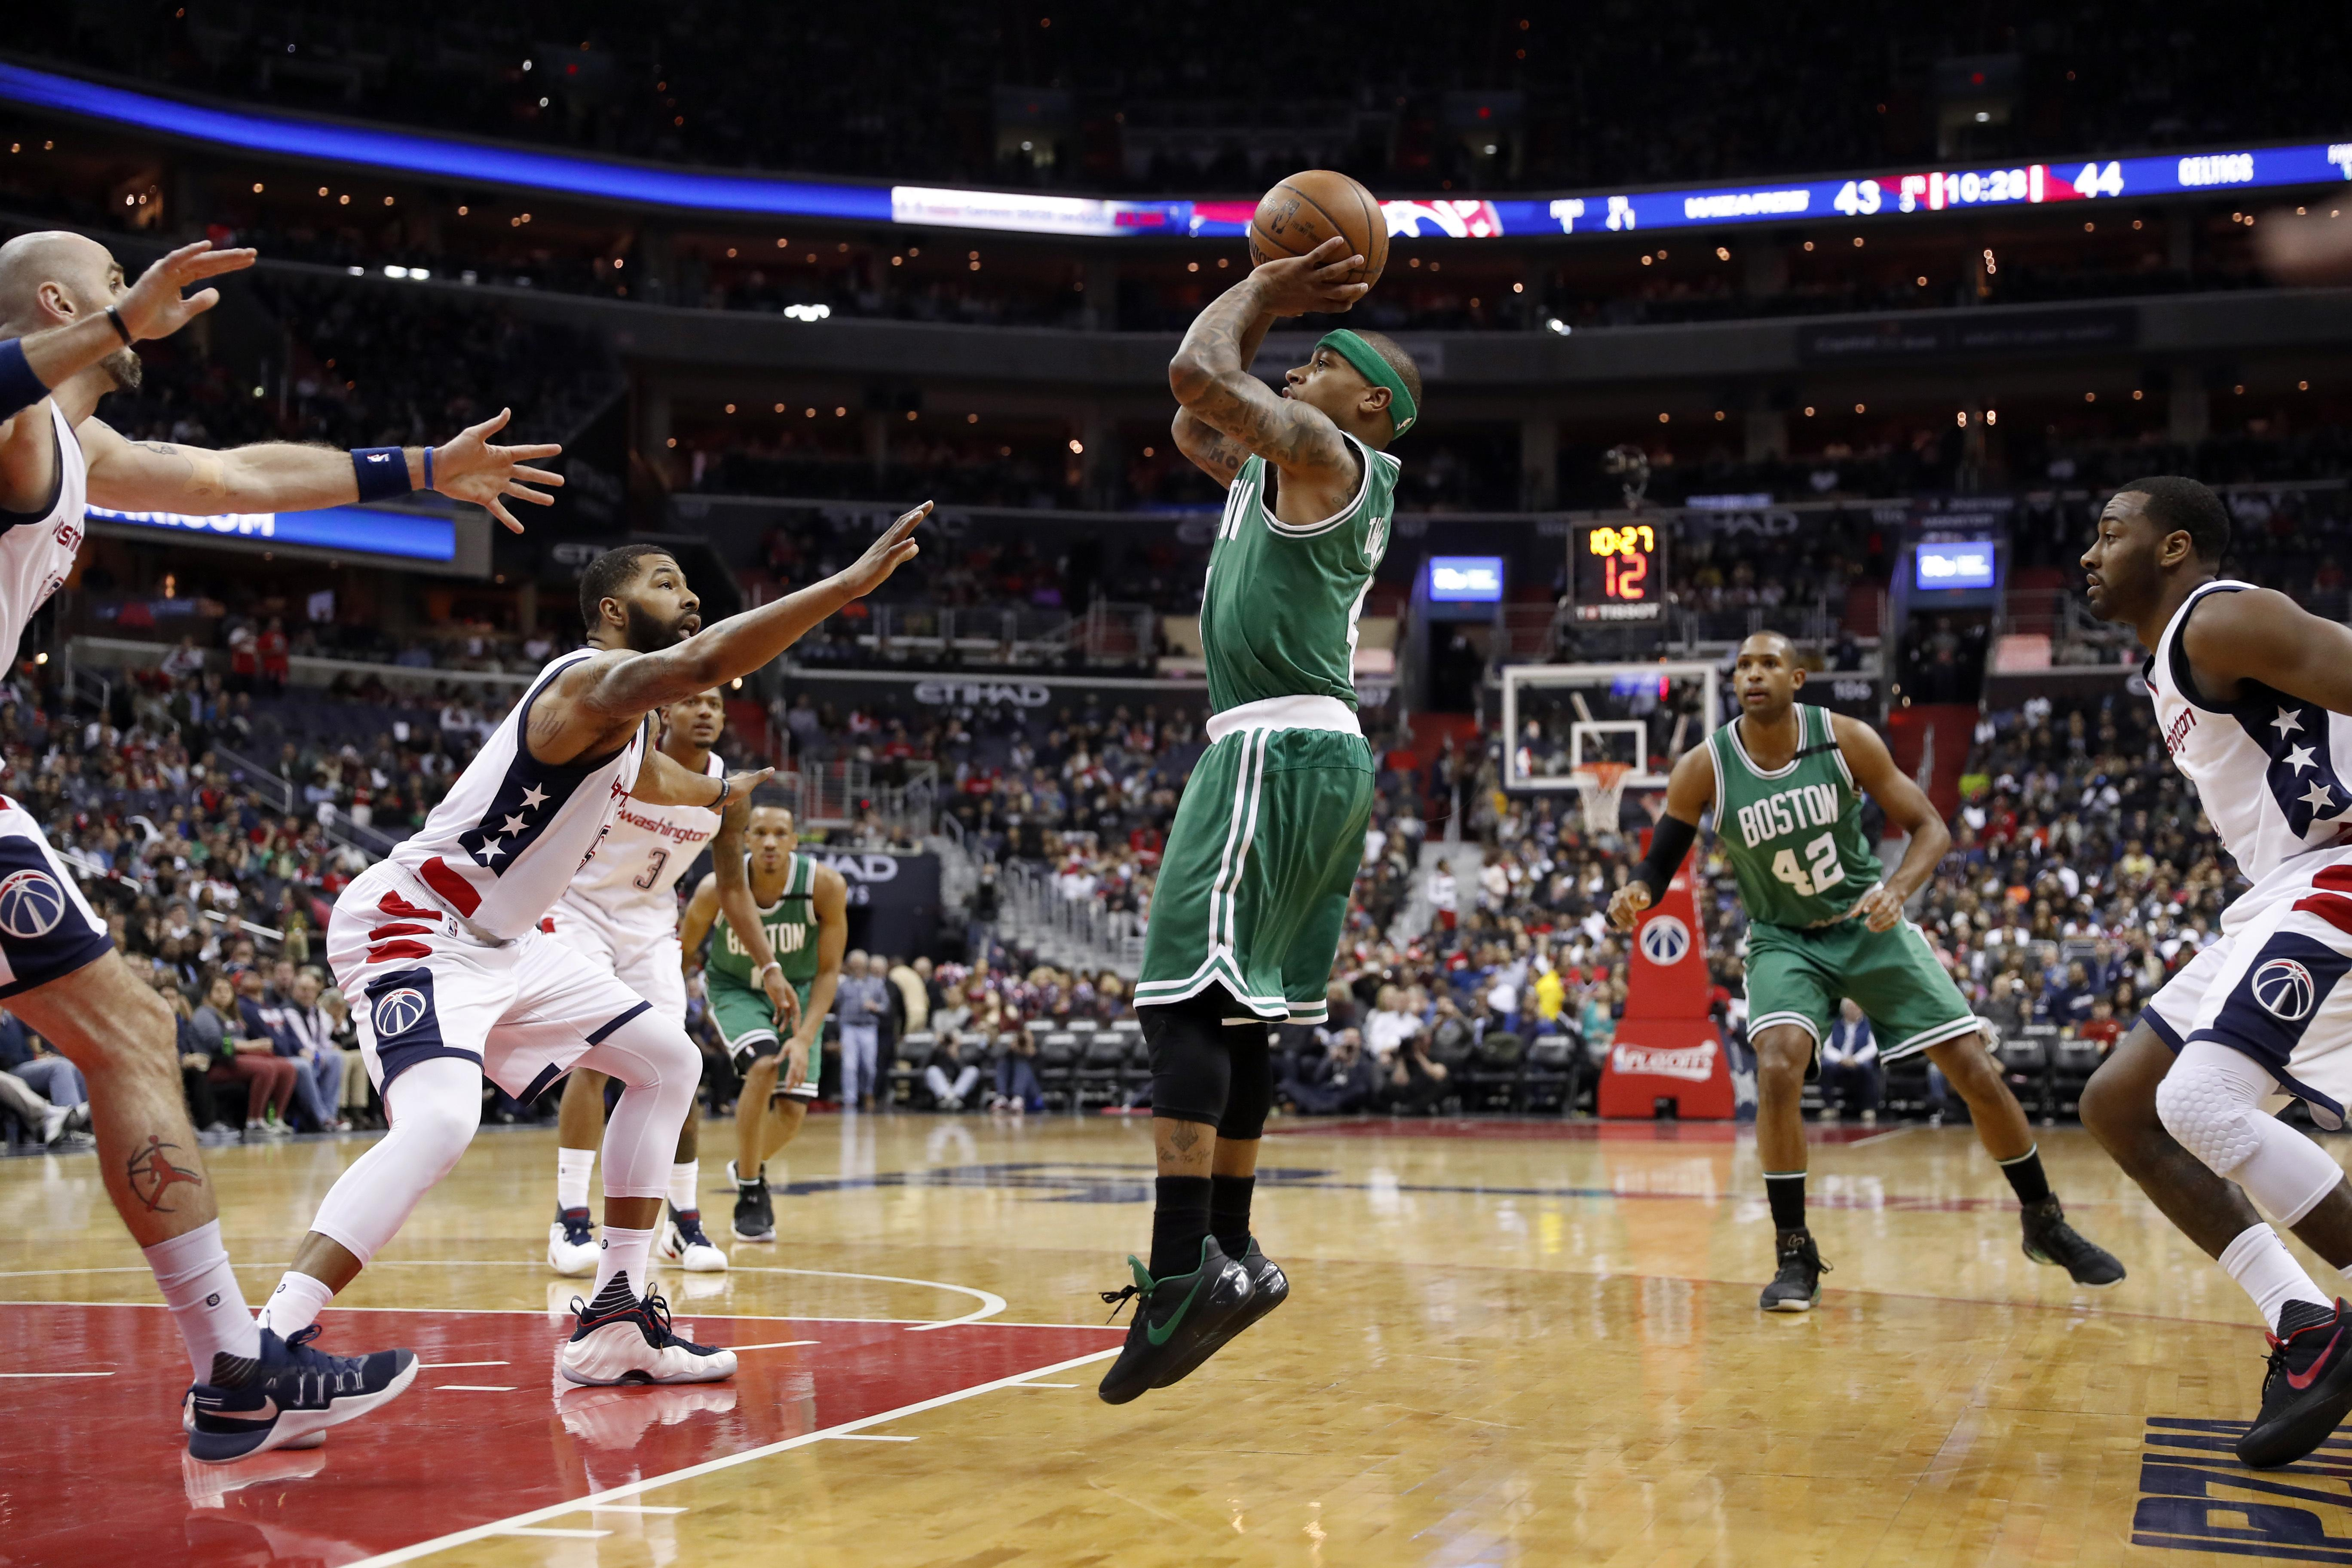 boston celtics vs washington wizards live stream free